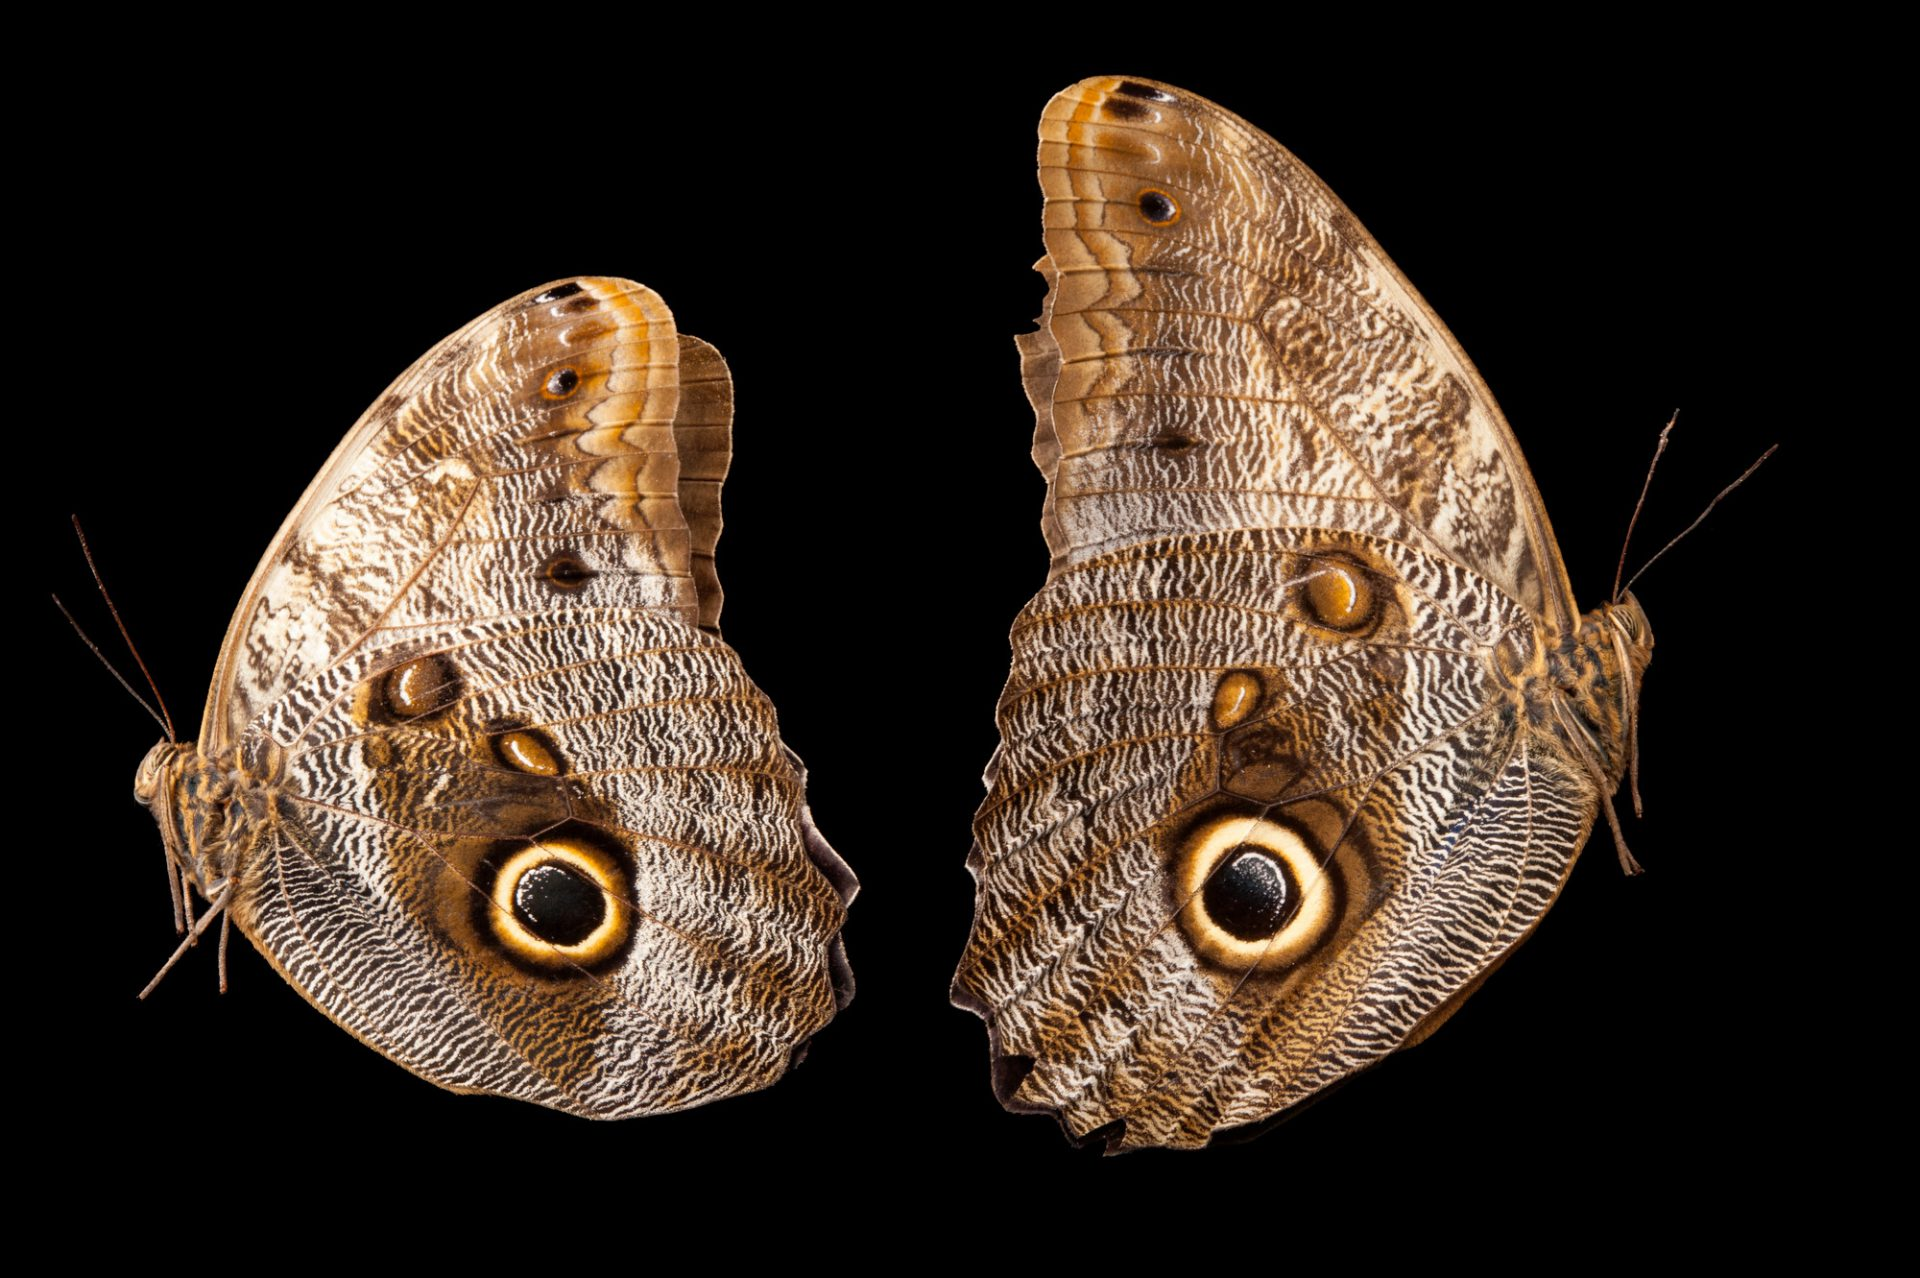 Two owl butterflies (Caligo memnon) at the Insectarium in New Orleans, Louisiana.